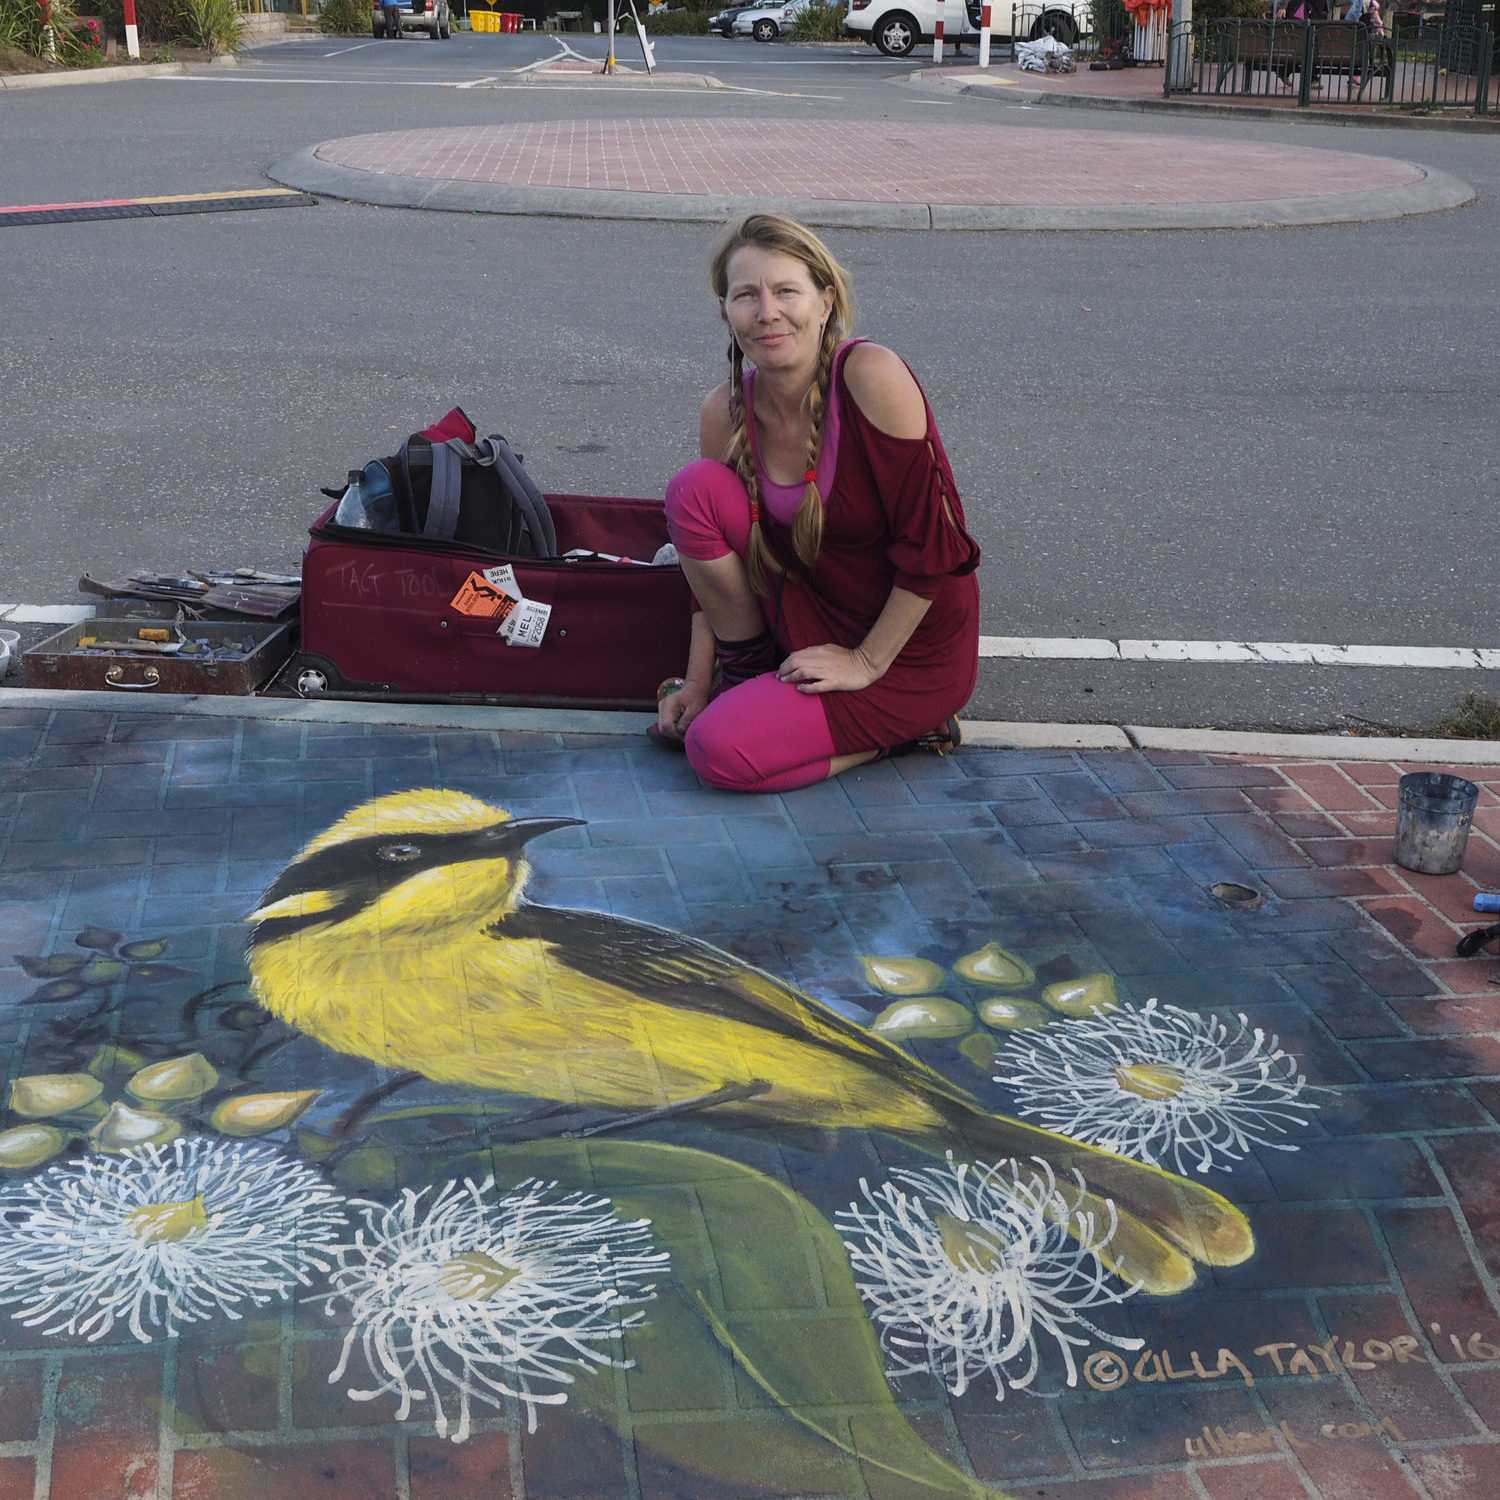 Incredible street art - literally beautifying the pavement